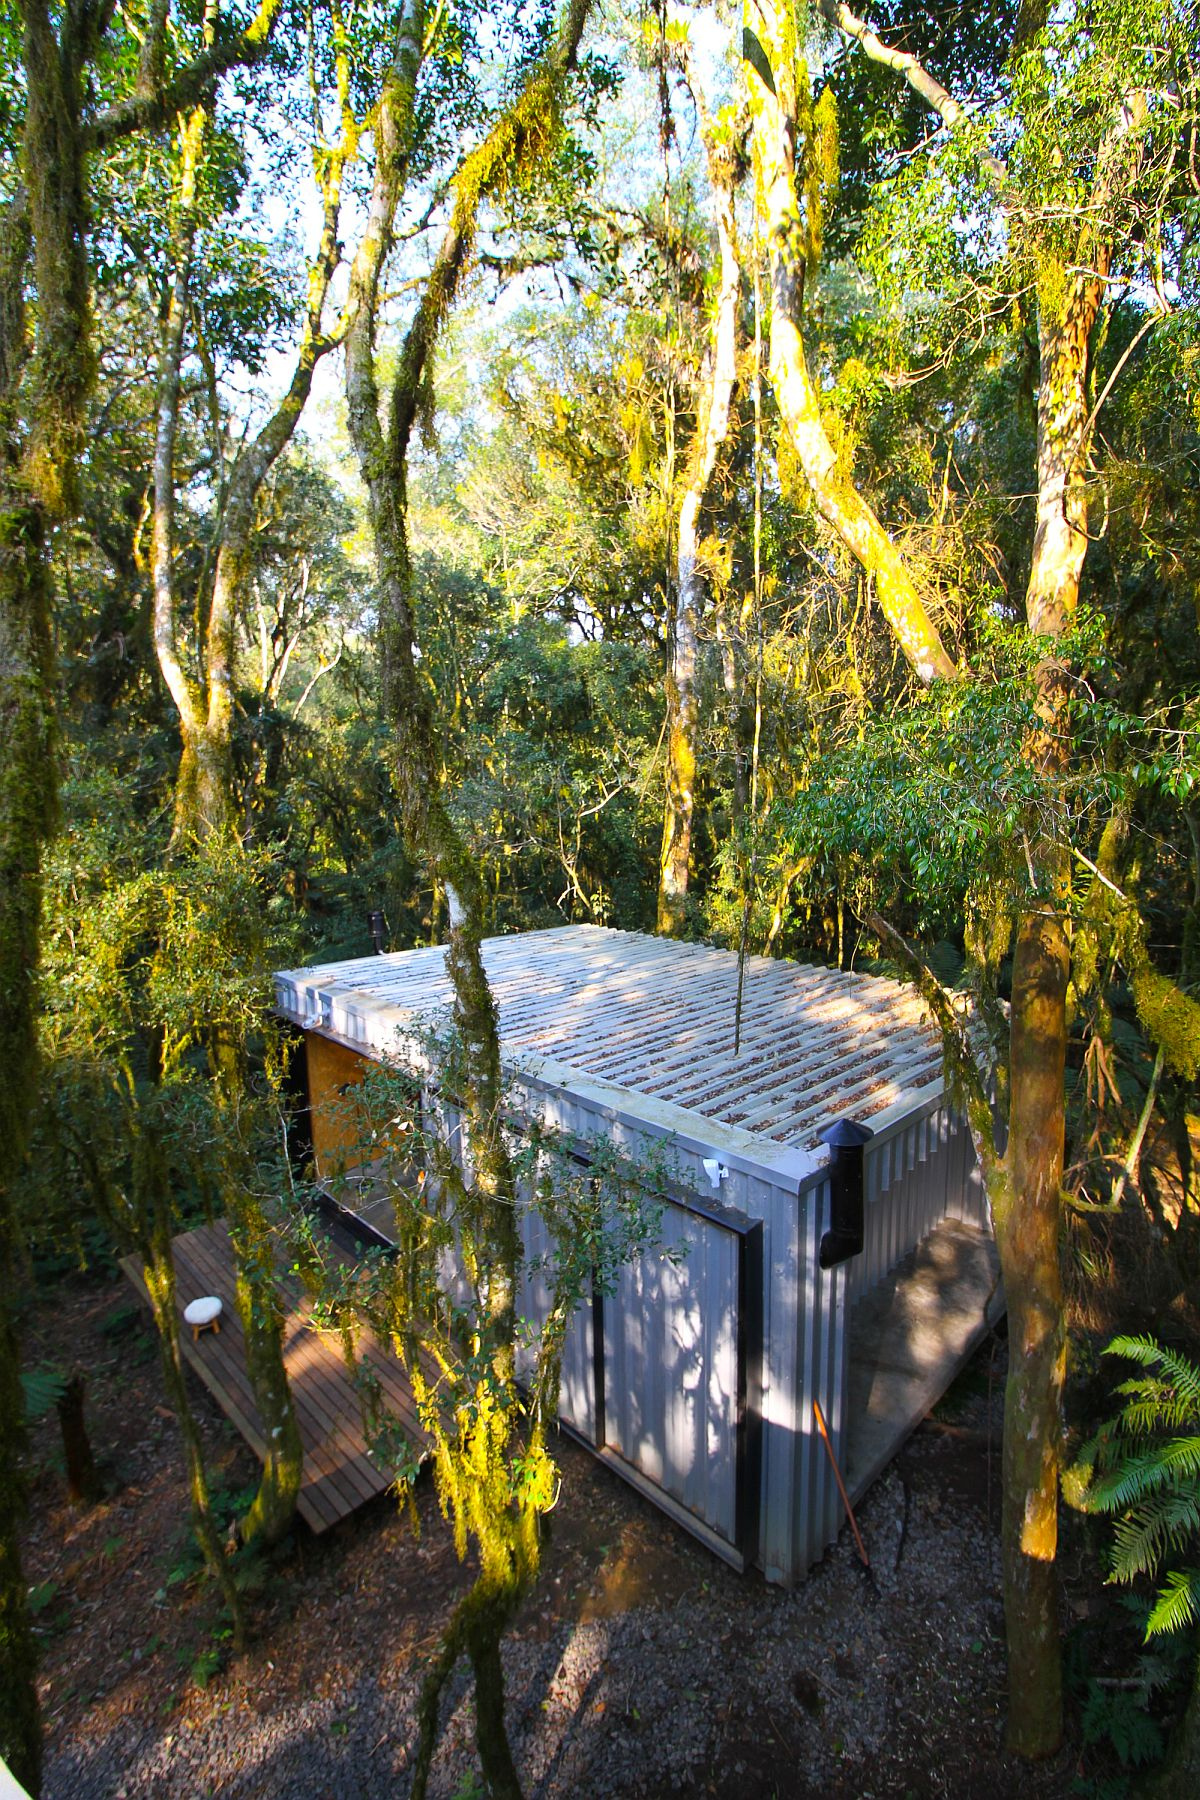 Smart-design-of-the-vacation-homes-integrates-the-retreats-with-nature-42605